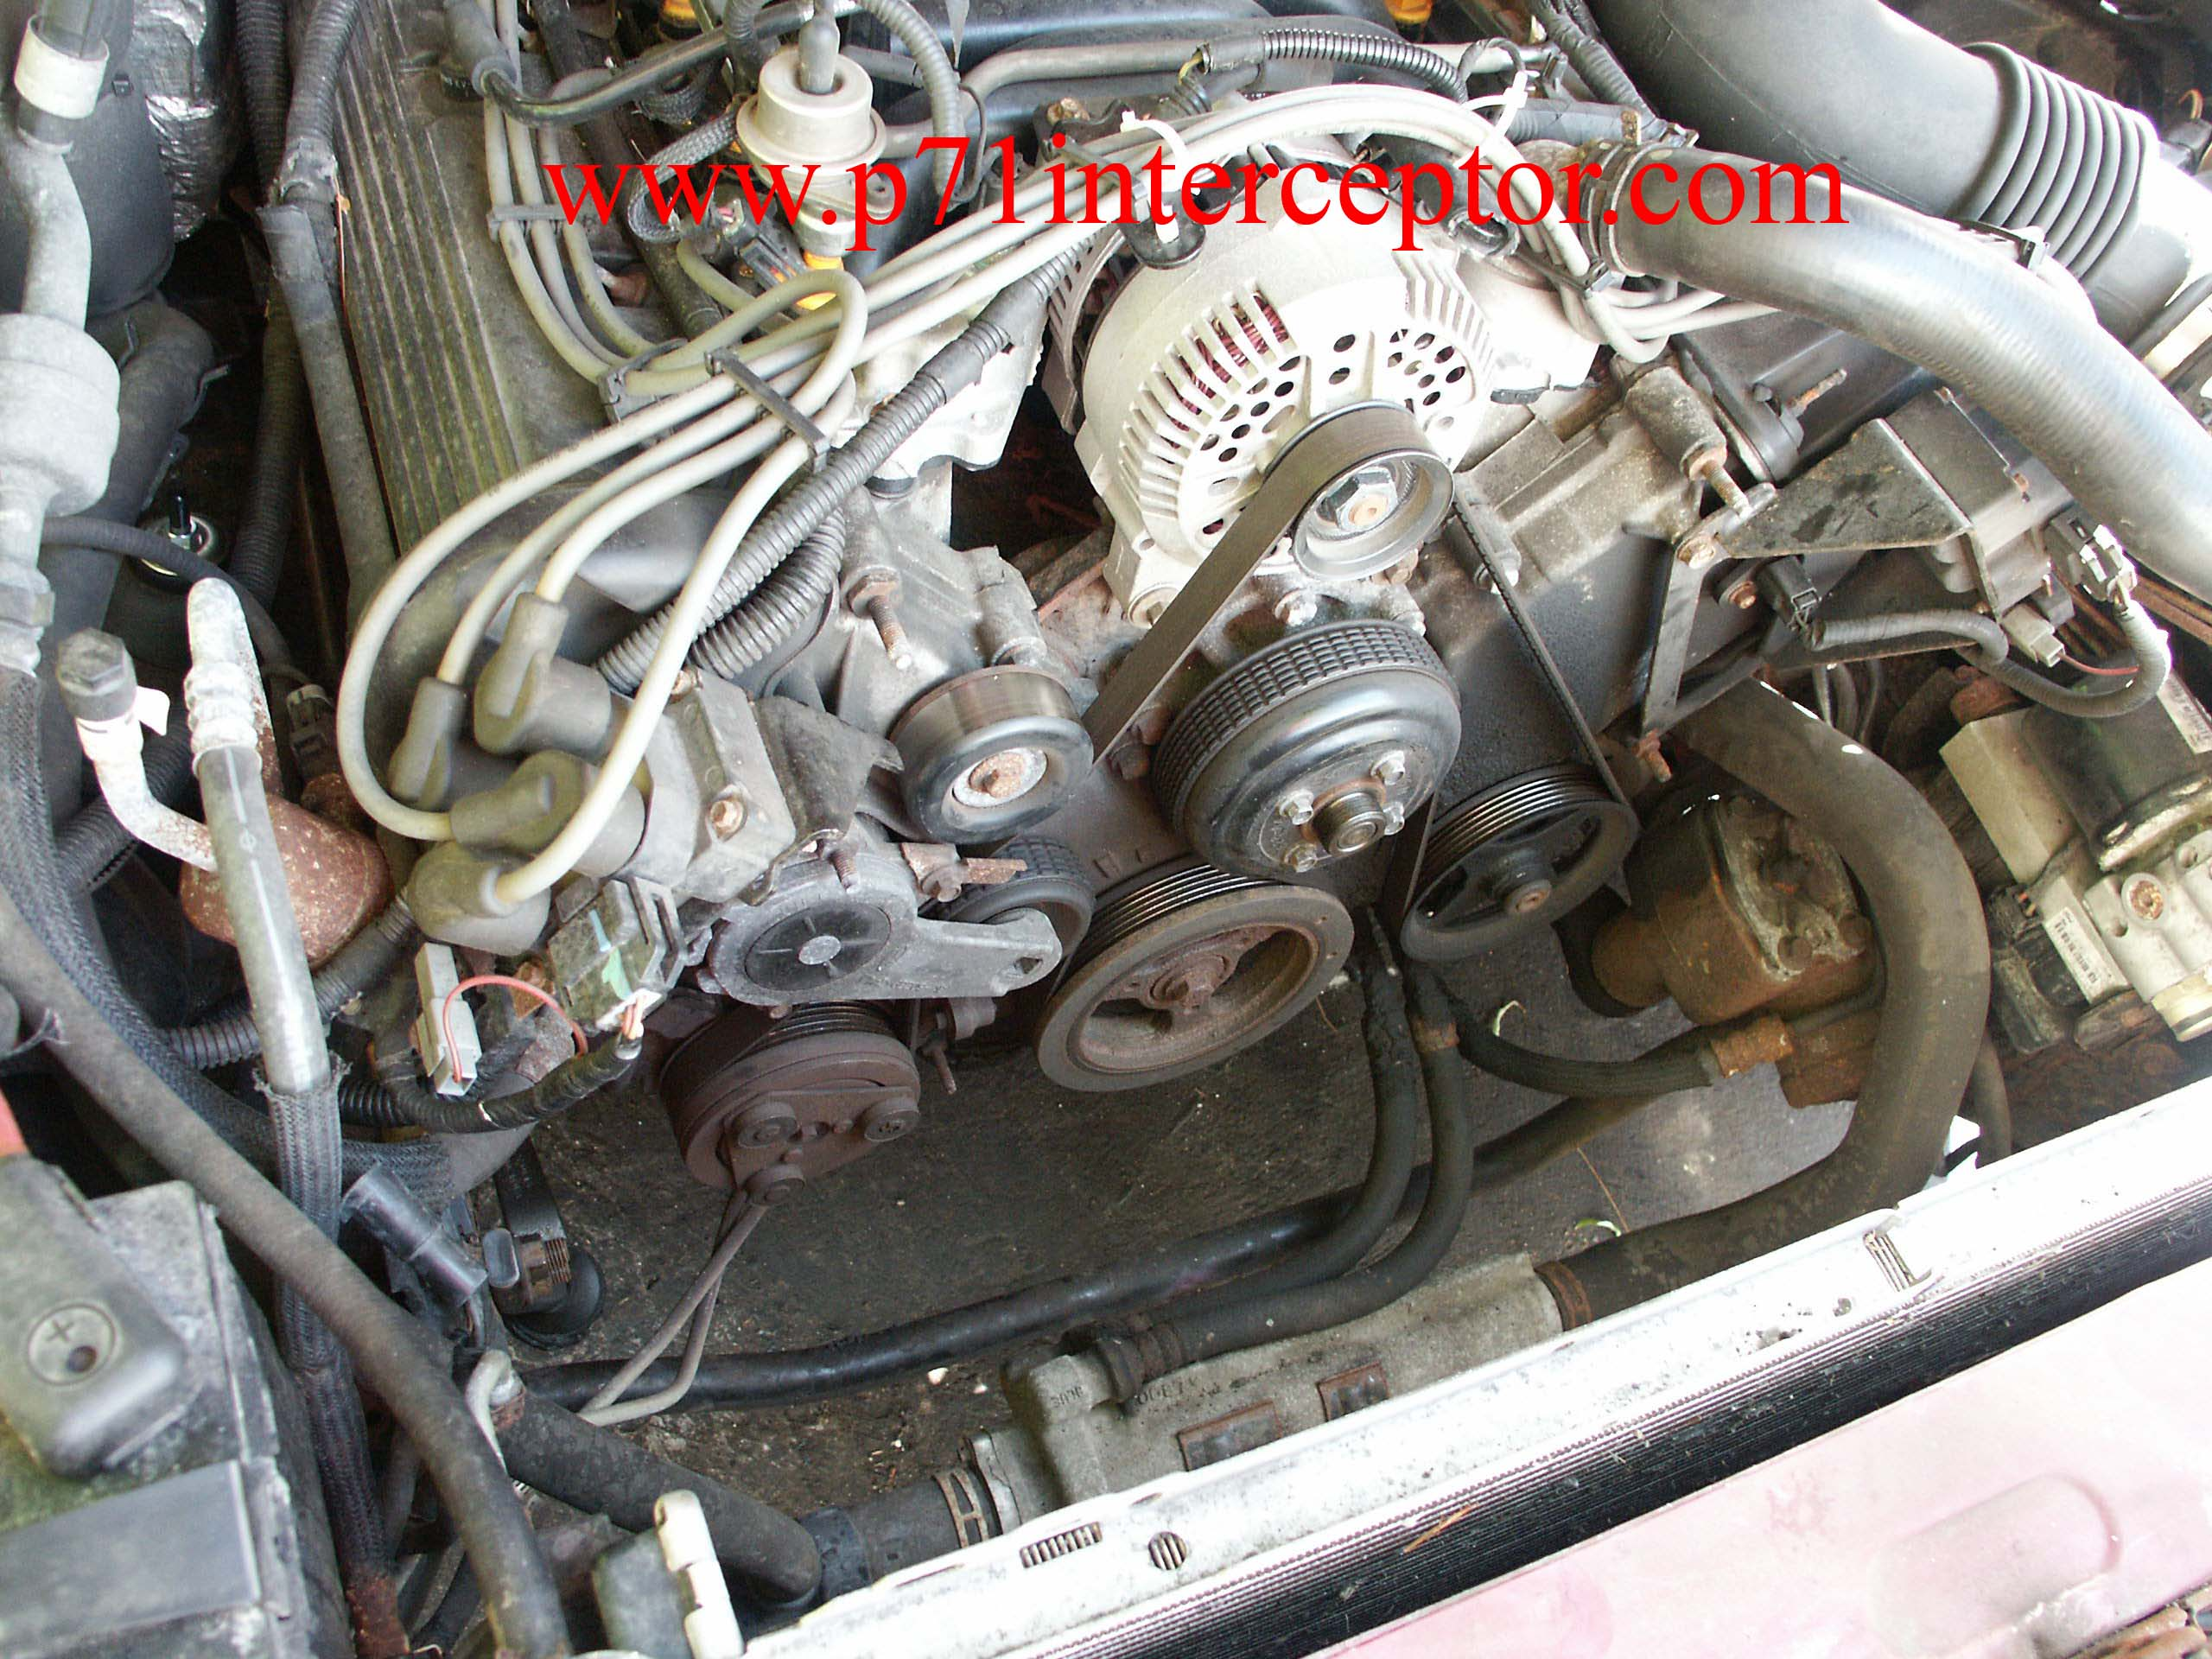 1995 Crown Vic Engine Diagram Starting Know About Wiring 1996 Ford Contour Fuel Injector Harness Victoria Power Steering Pump Replacement